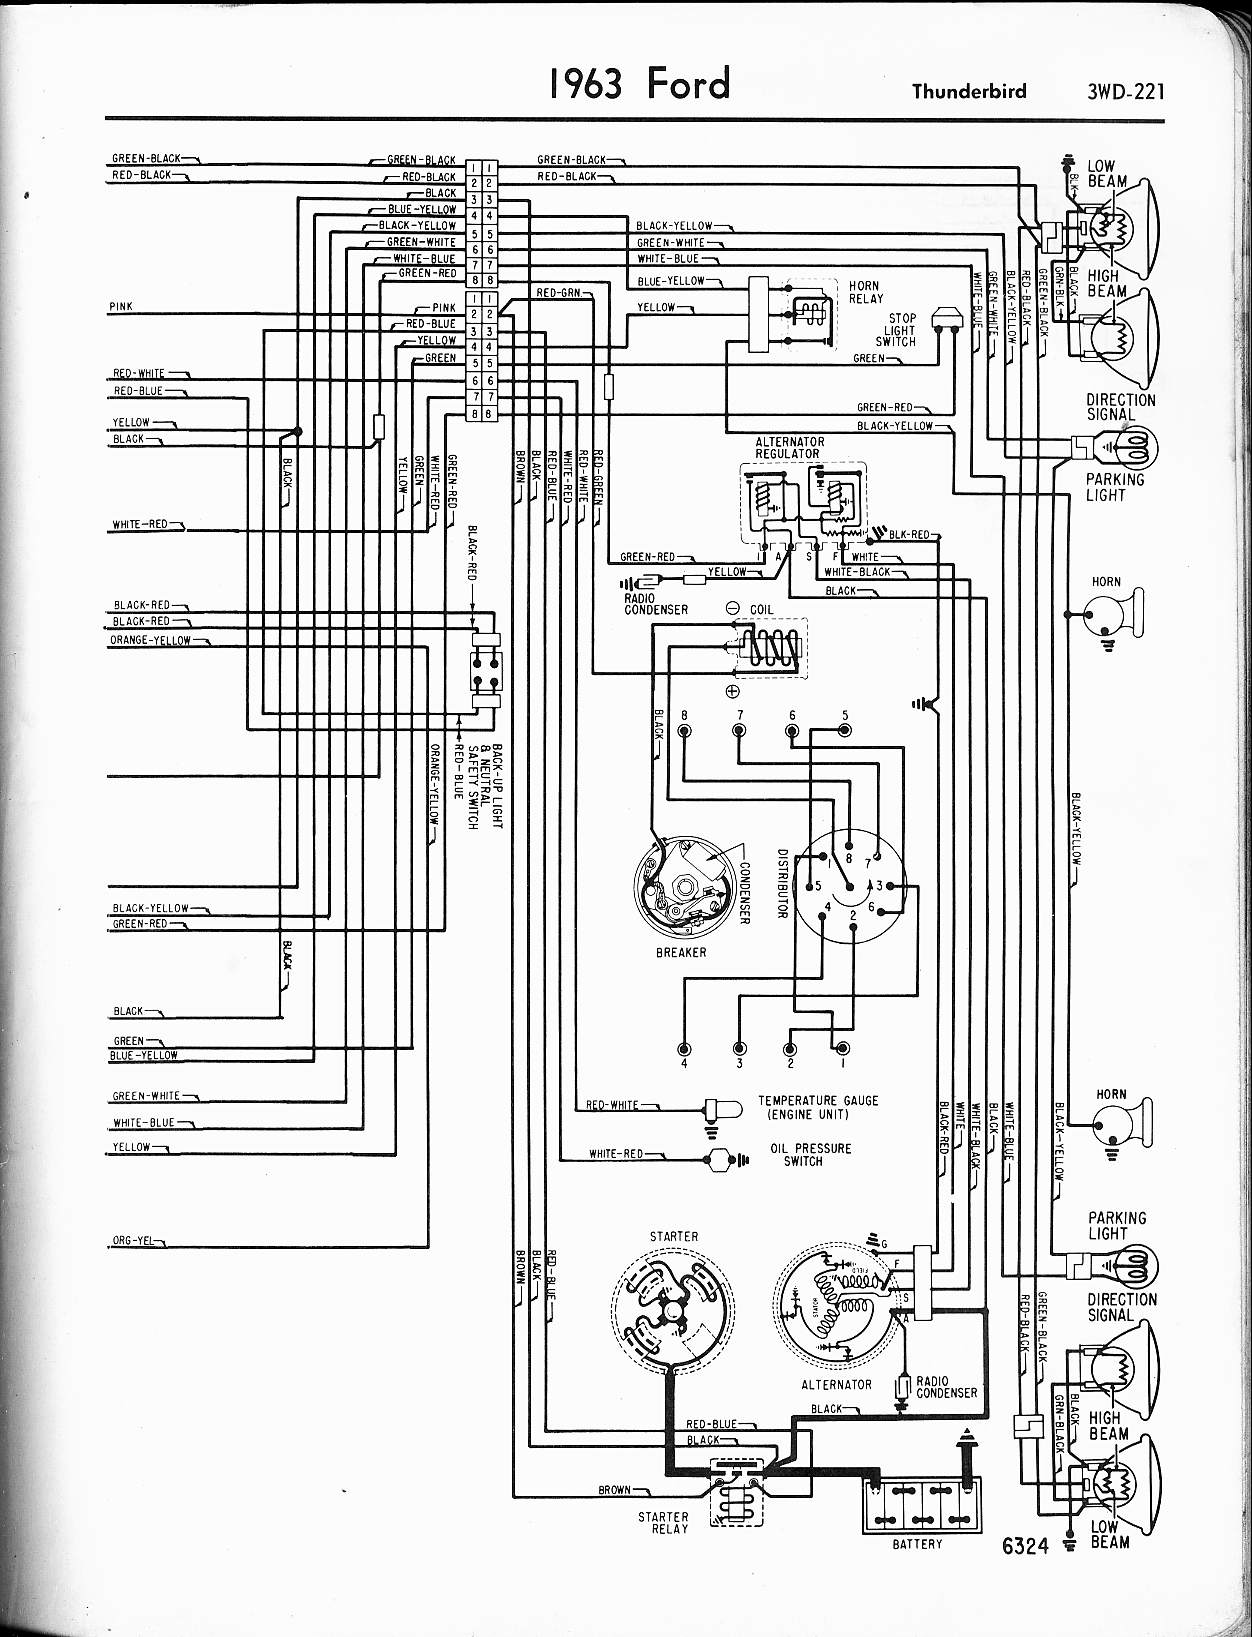 57 65 Ford Wiring Diagrams 1999 Ford Truck Wiring Diagram Wiring Diagram 55  Ford